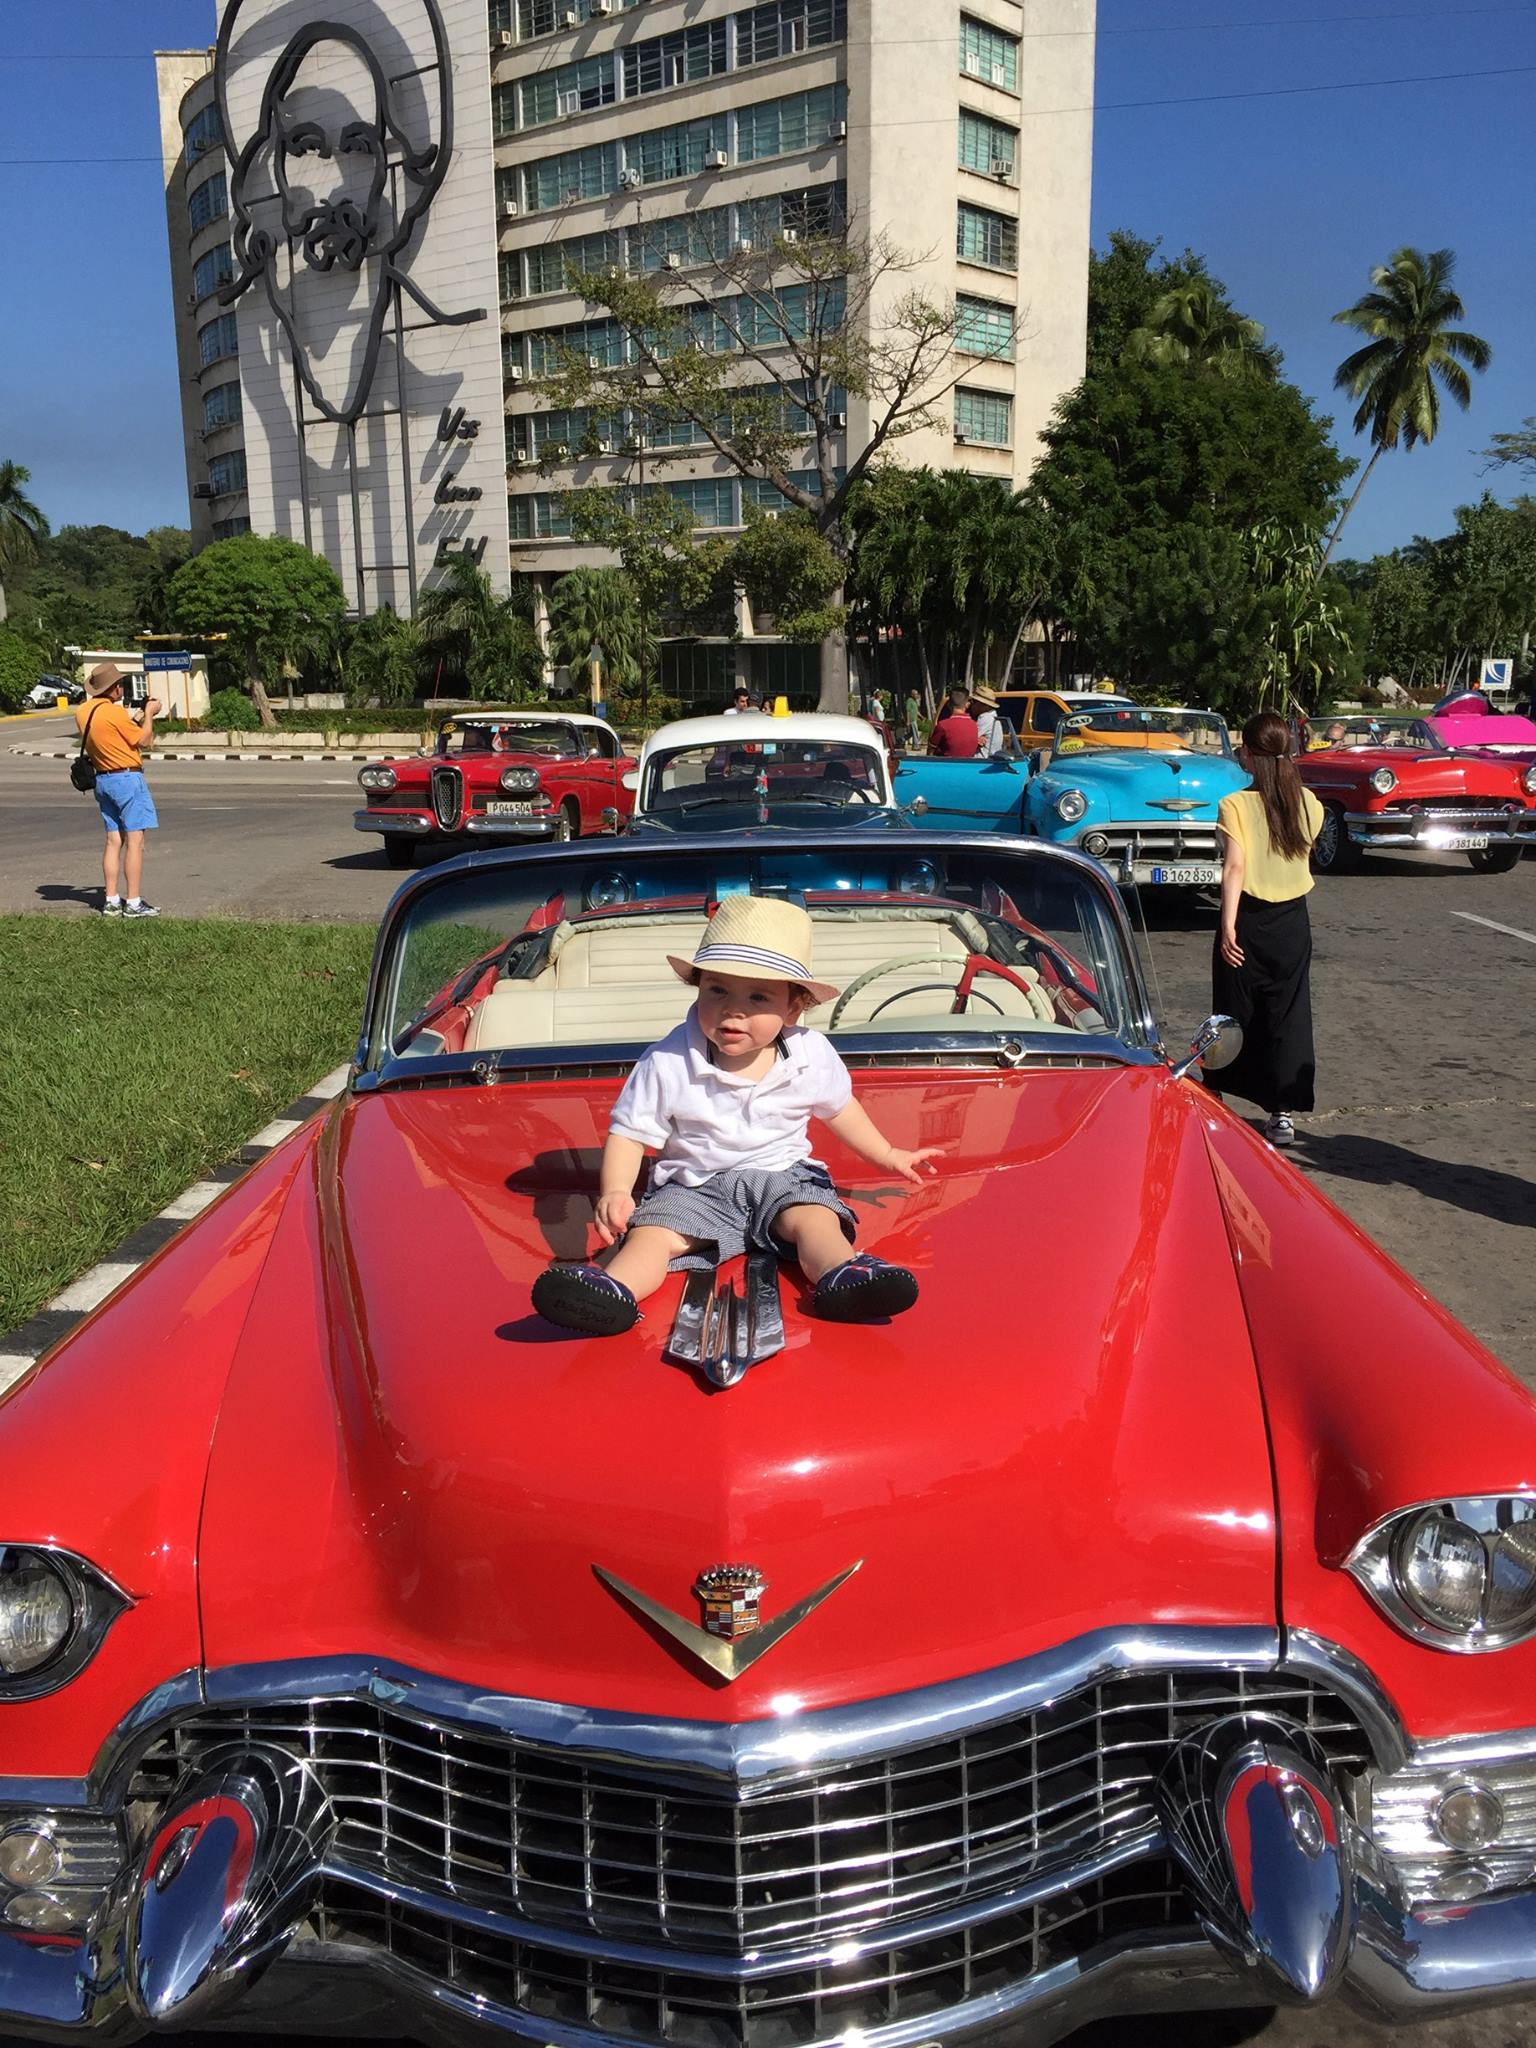 My favorite new friend, Troy aka Dabba Dabba, showing off his cuba outfit on the hood of this gorgeous car.